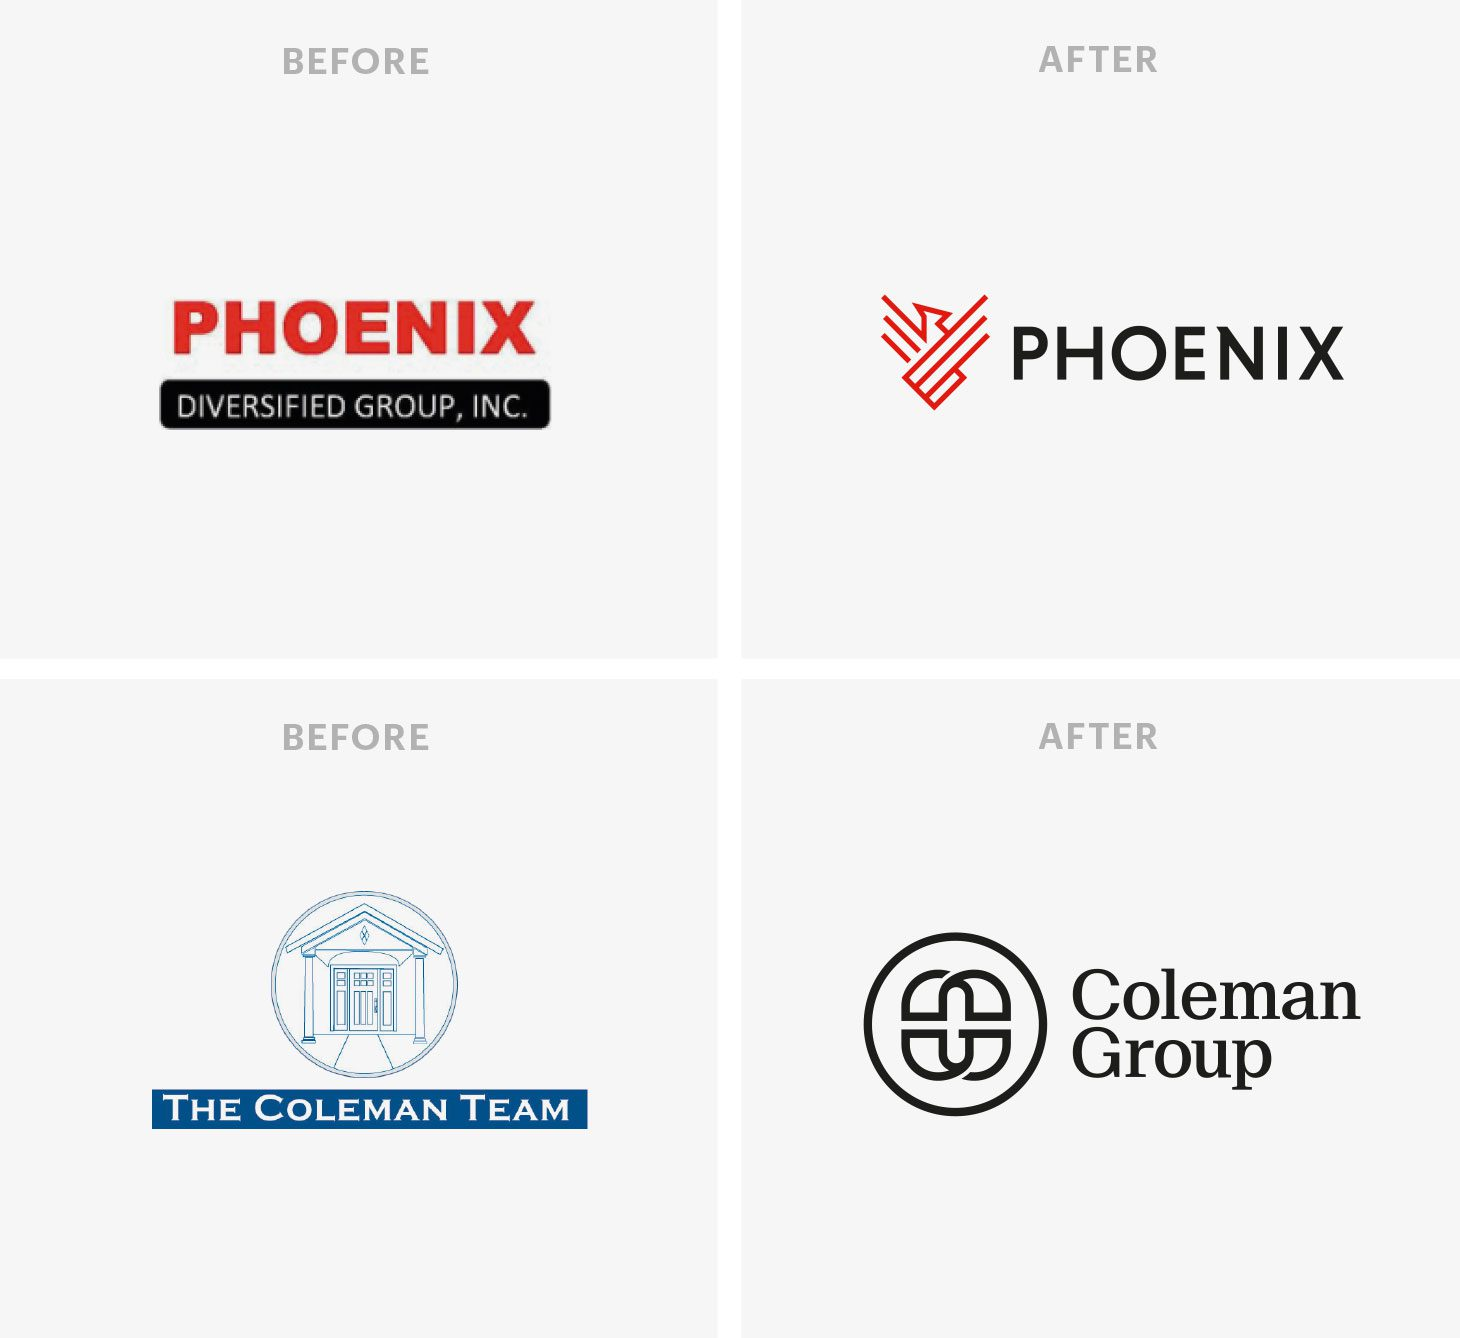 Logos Before and After 2